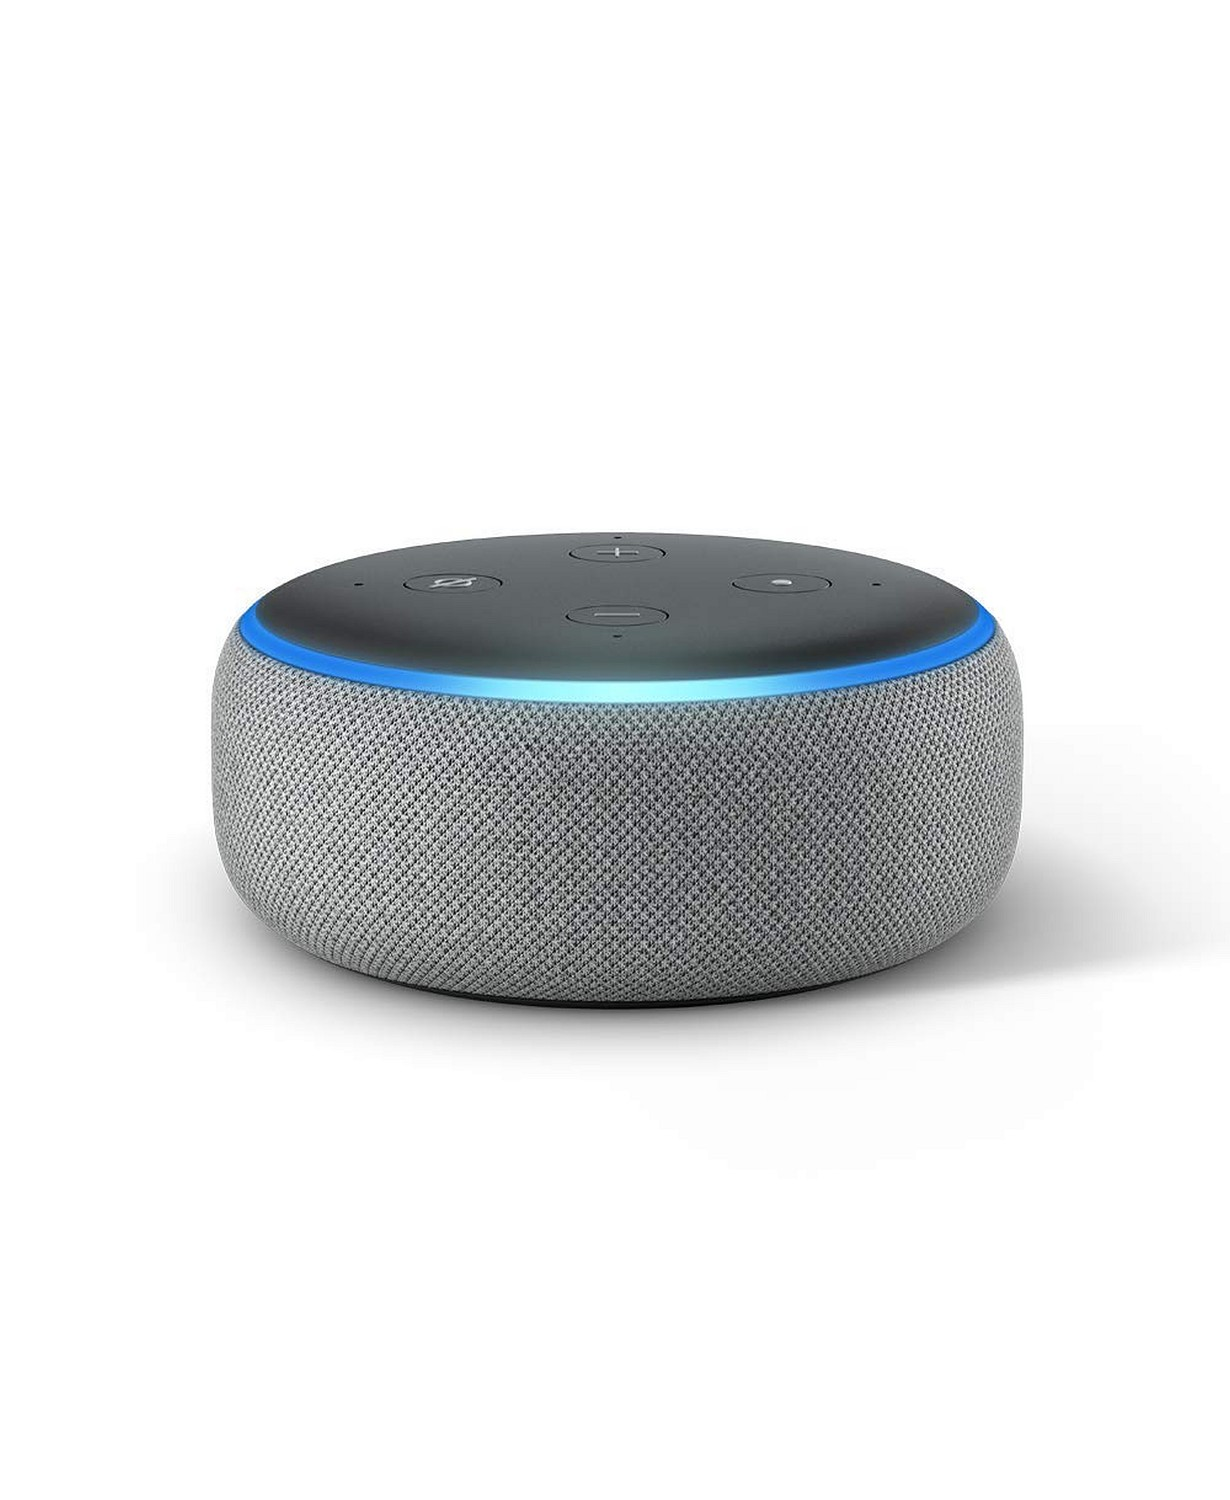 Amazon Alexa Enabled Echo Dot 3rd Generation